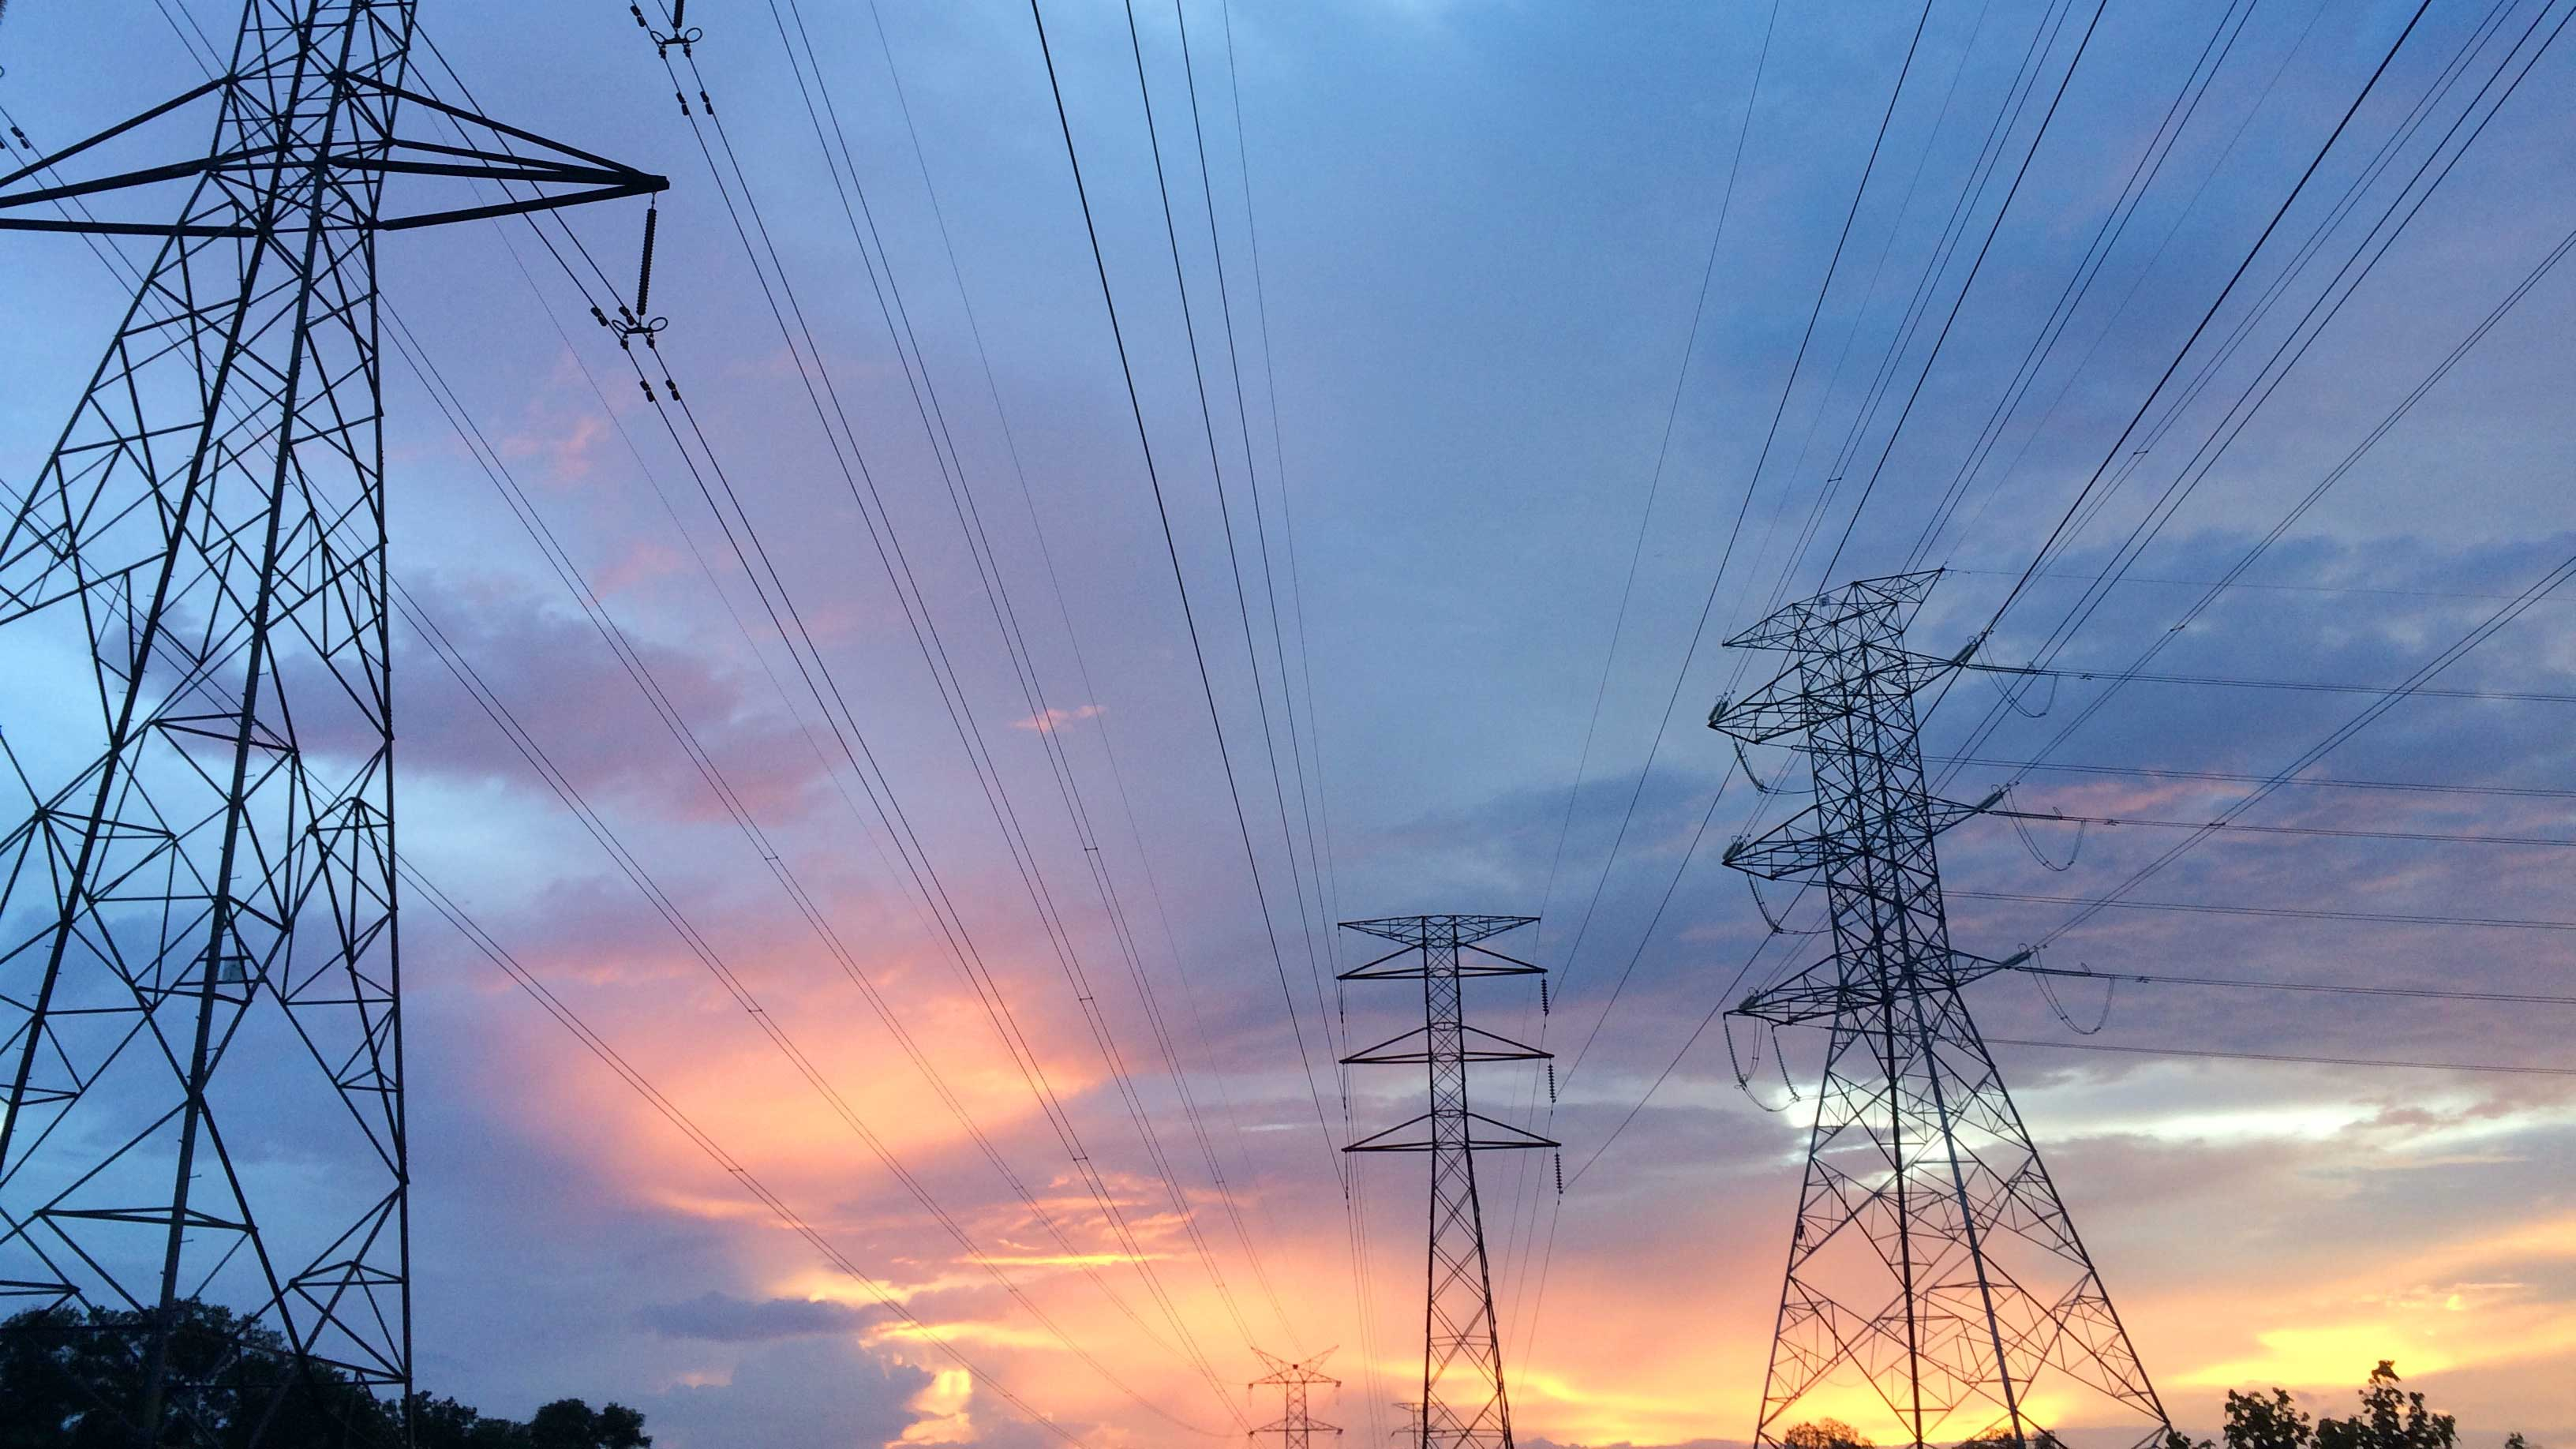 a colorful sunset with electrical grid towers in the foreground